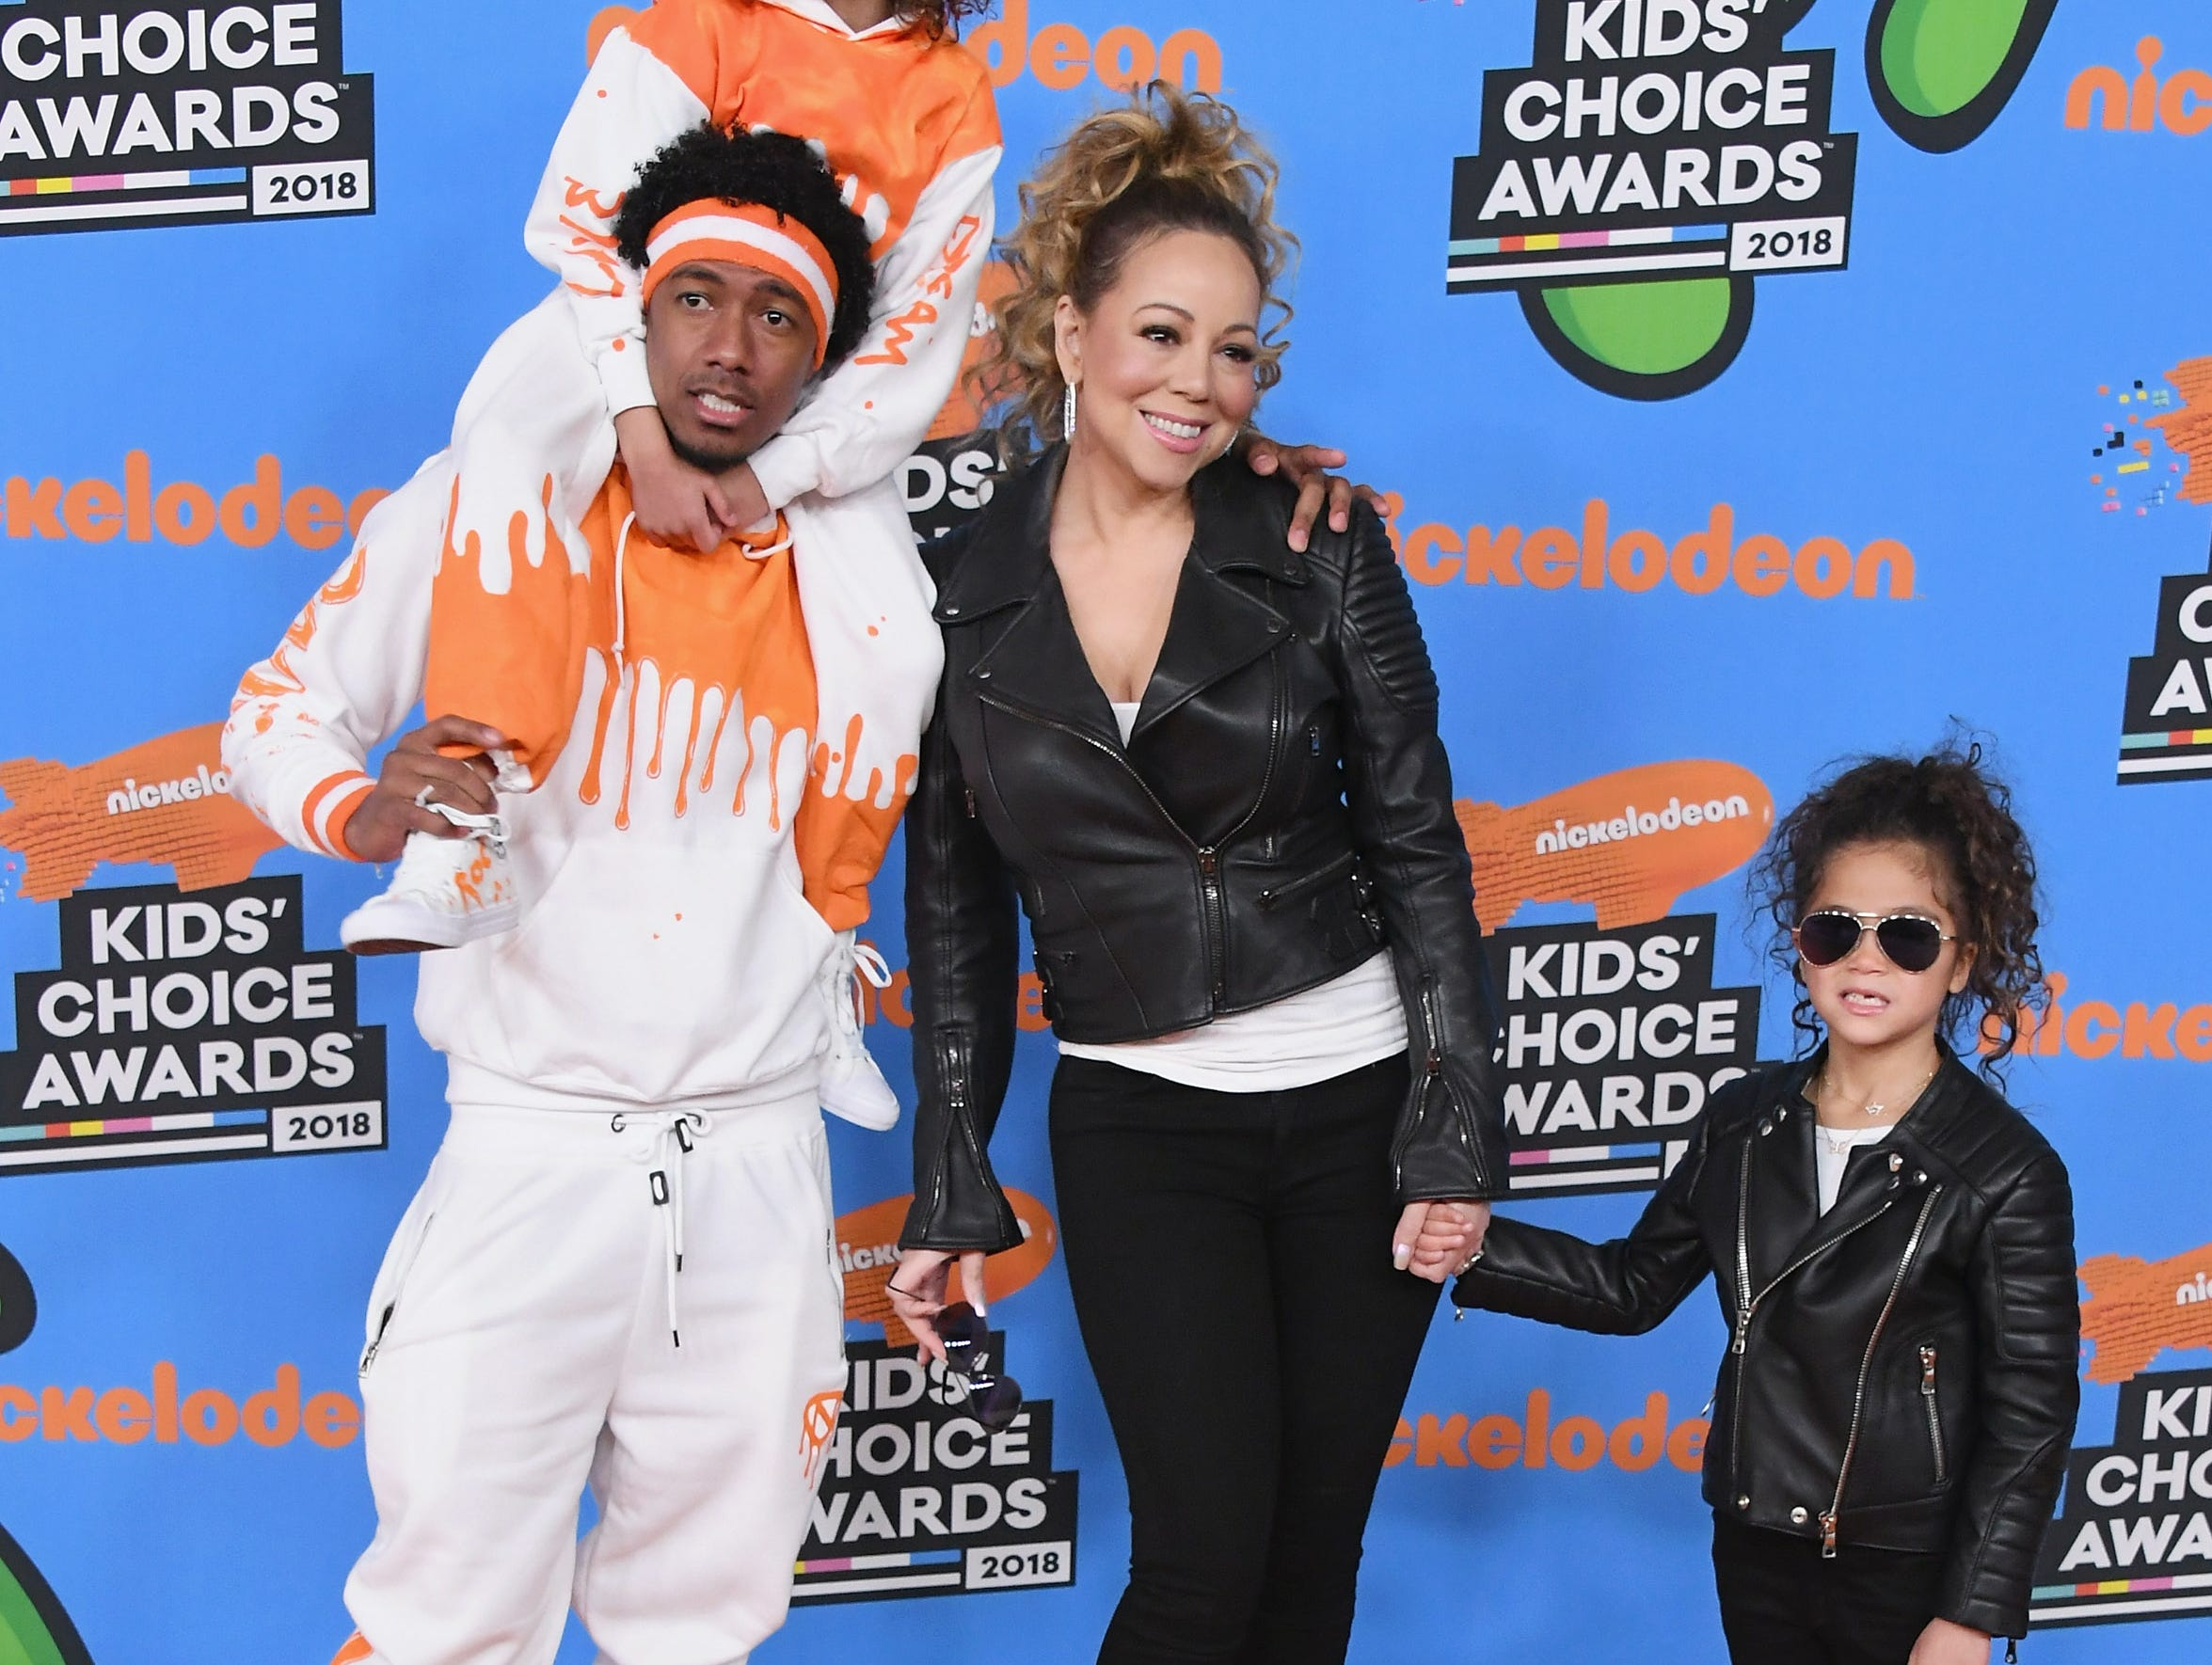 March 24: Co-parenting goals: Nick Cannon and Mariah Carey take their kids, Moroccan and Monroe, to the Kids' Choice Awards in adorable matching outfits.